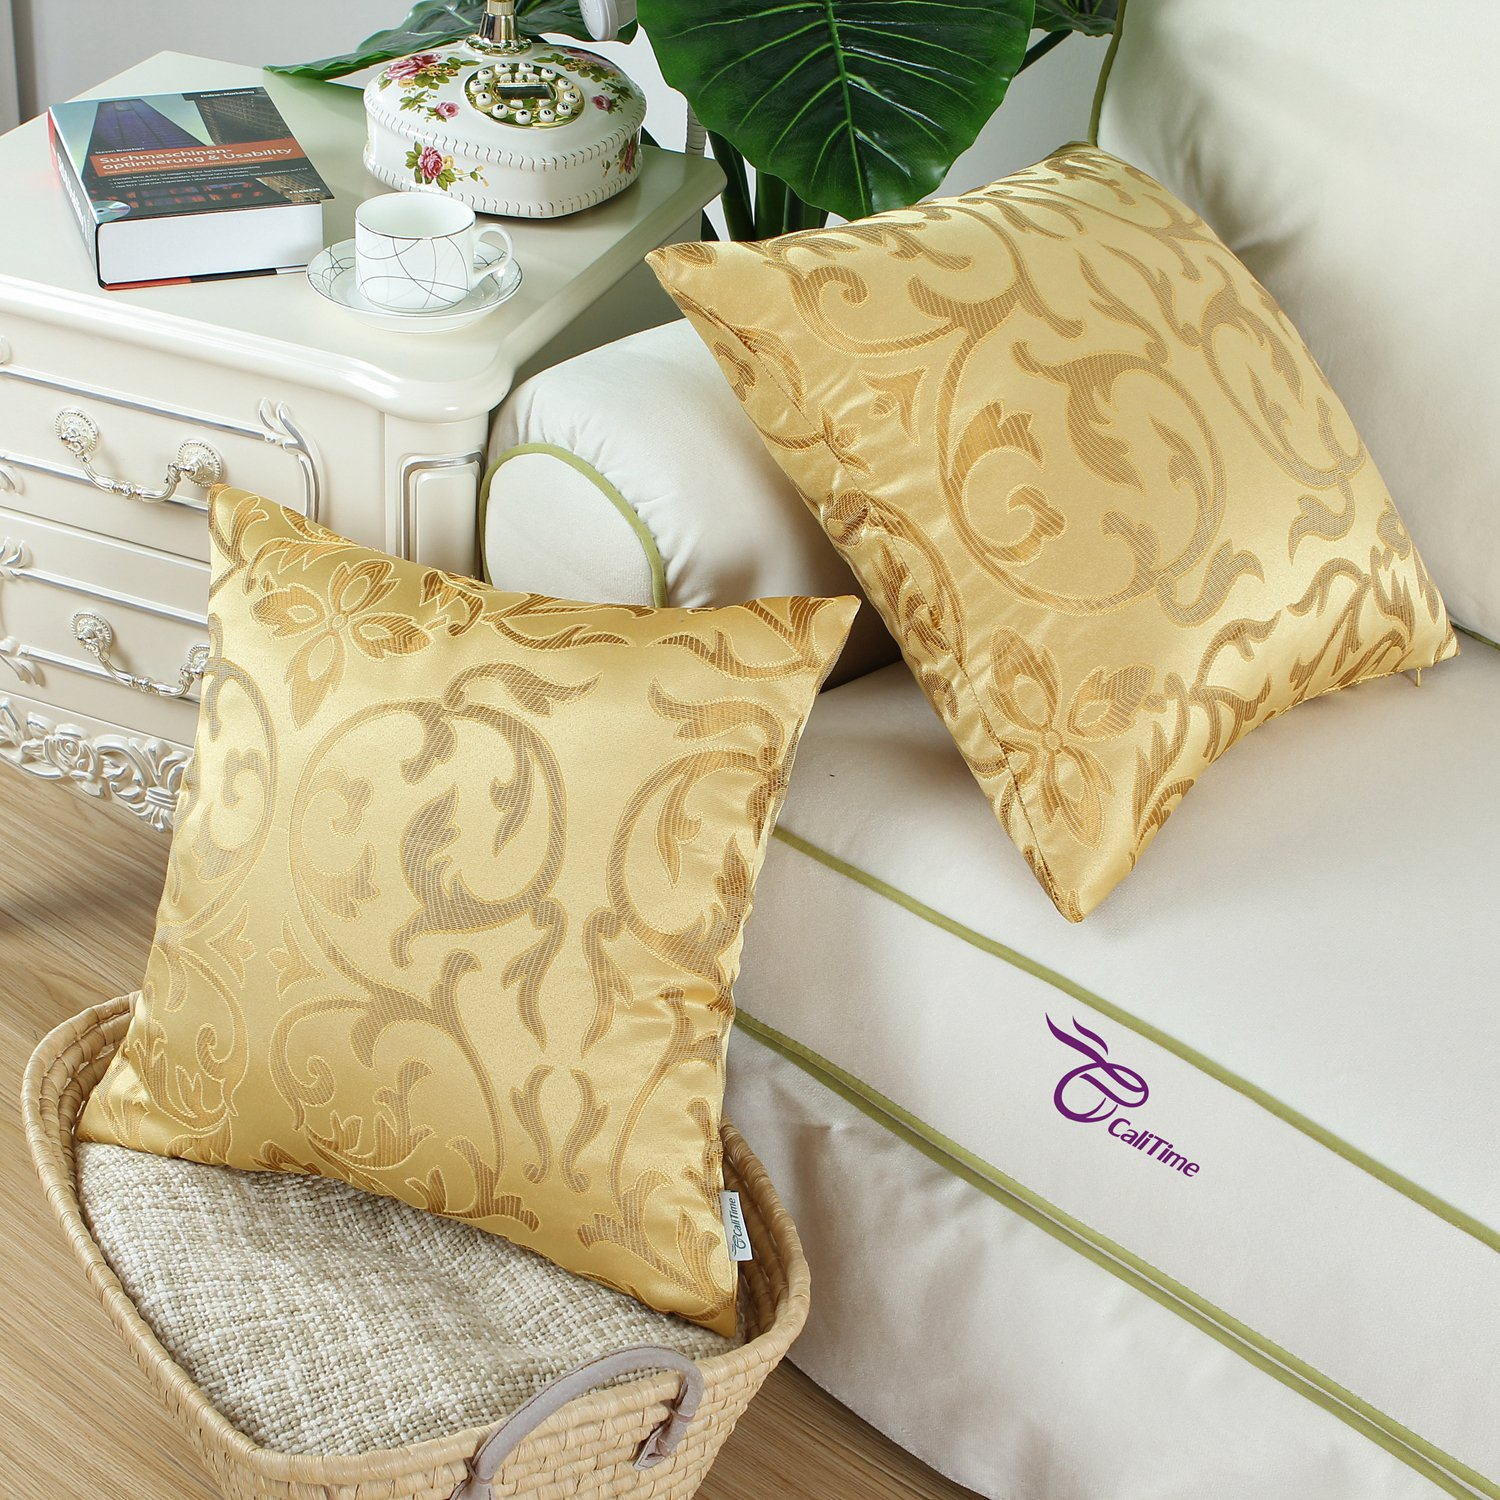 CaliTime Cushion Covers 2 Pack 30cm x 50cm Navy Vintage Floral Both Sides Throw Pillow Cases